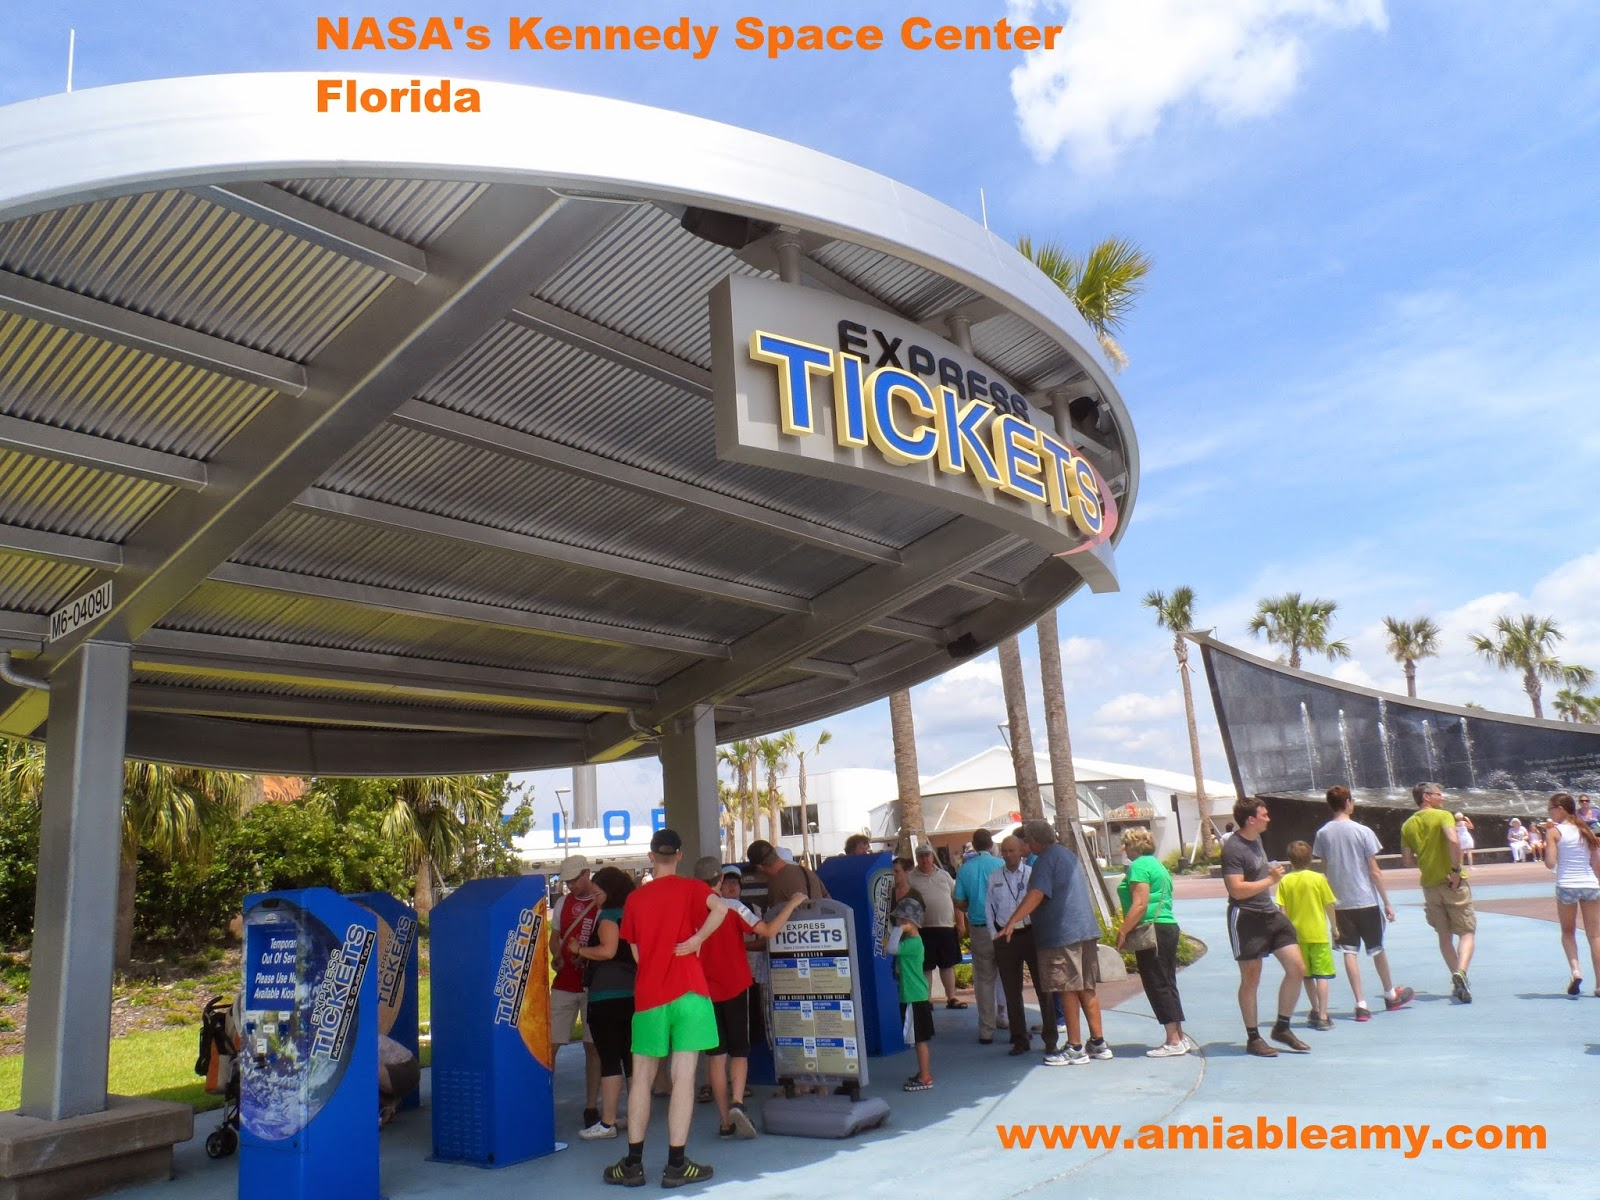 BEYOND PHOTOGRAPHY: NASA's Kennedy Space Center : Ticket Area